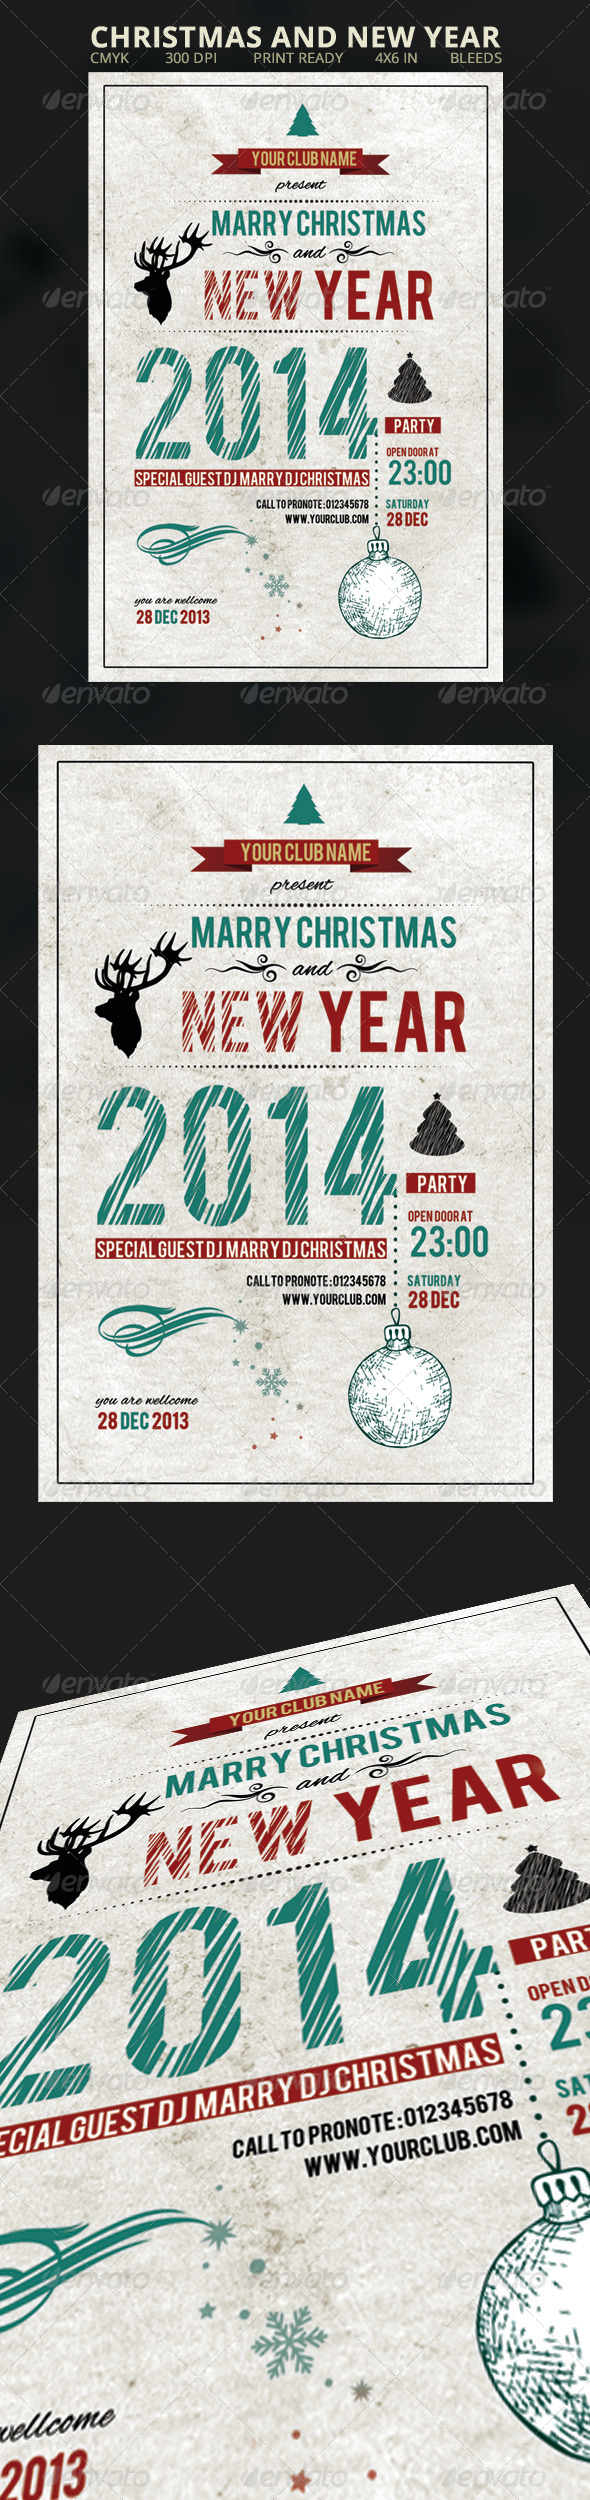 GraphicRiver Christmas and New Year Flyer 6287697